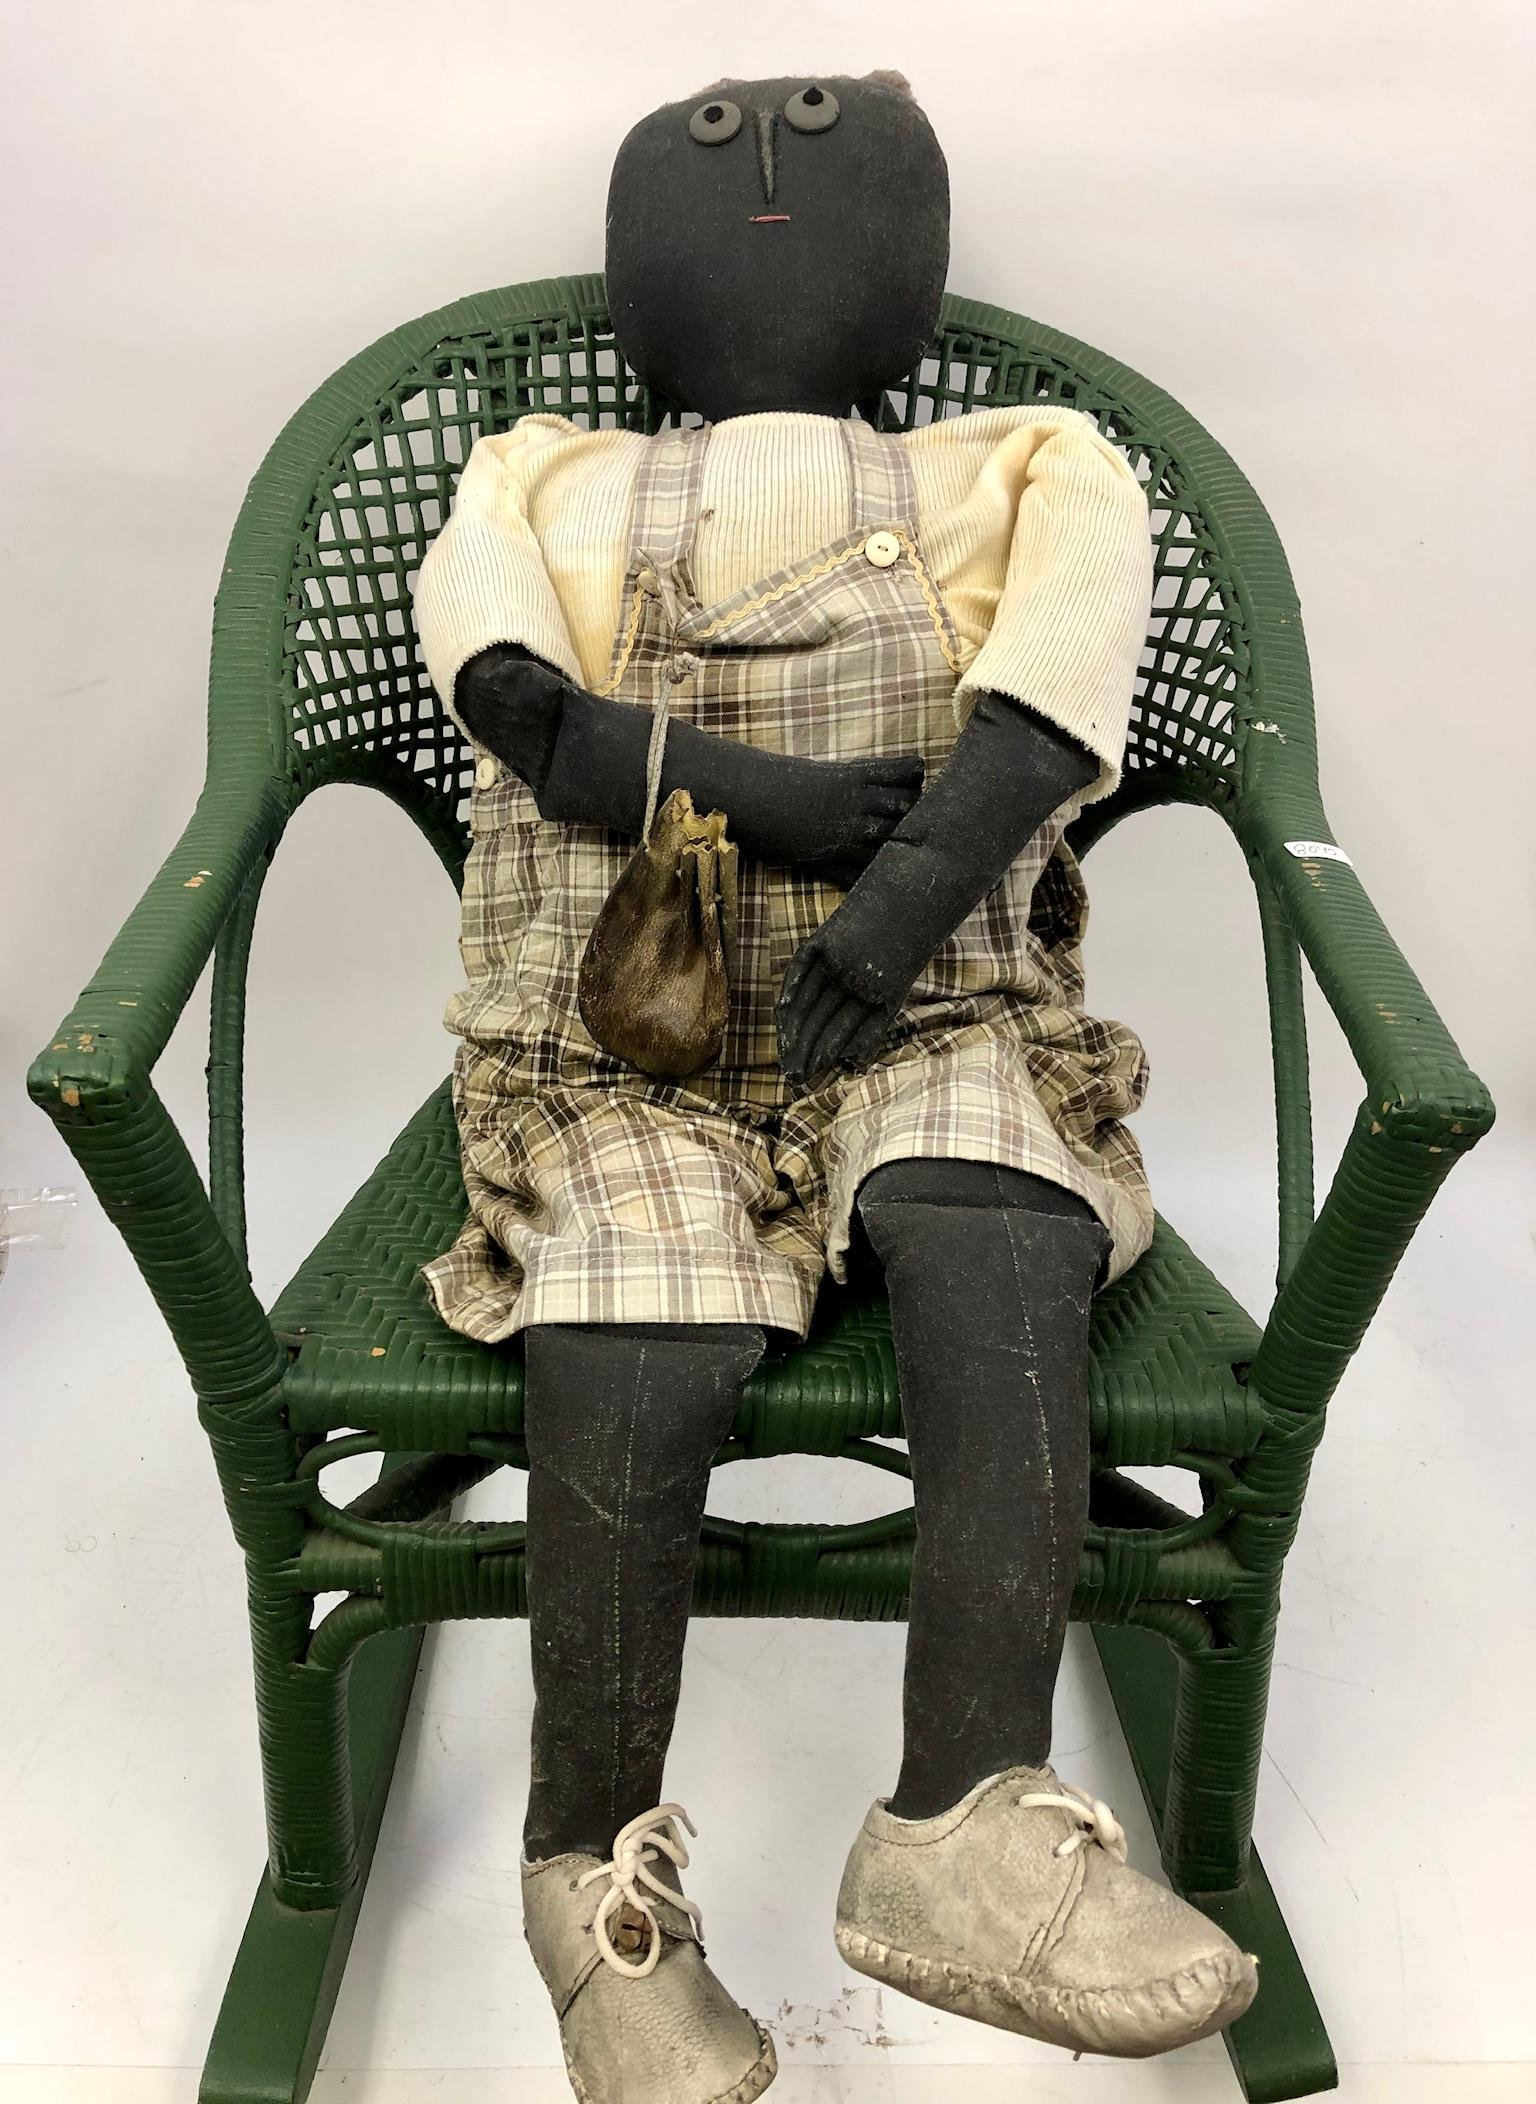 Antique Life Size Doll on a Wicker Rocking Chair